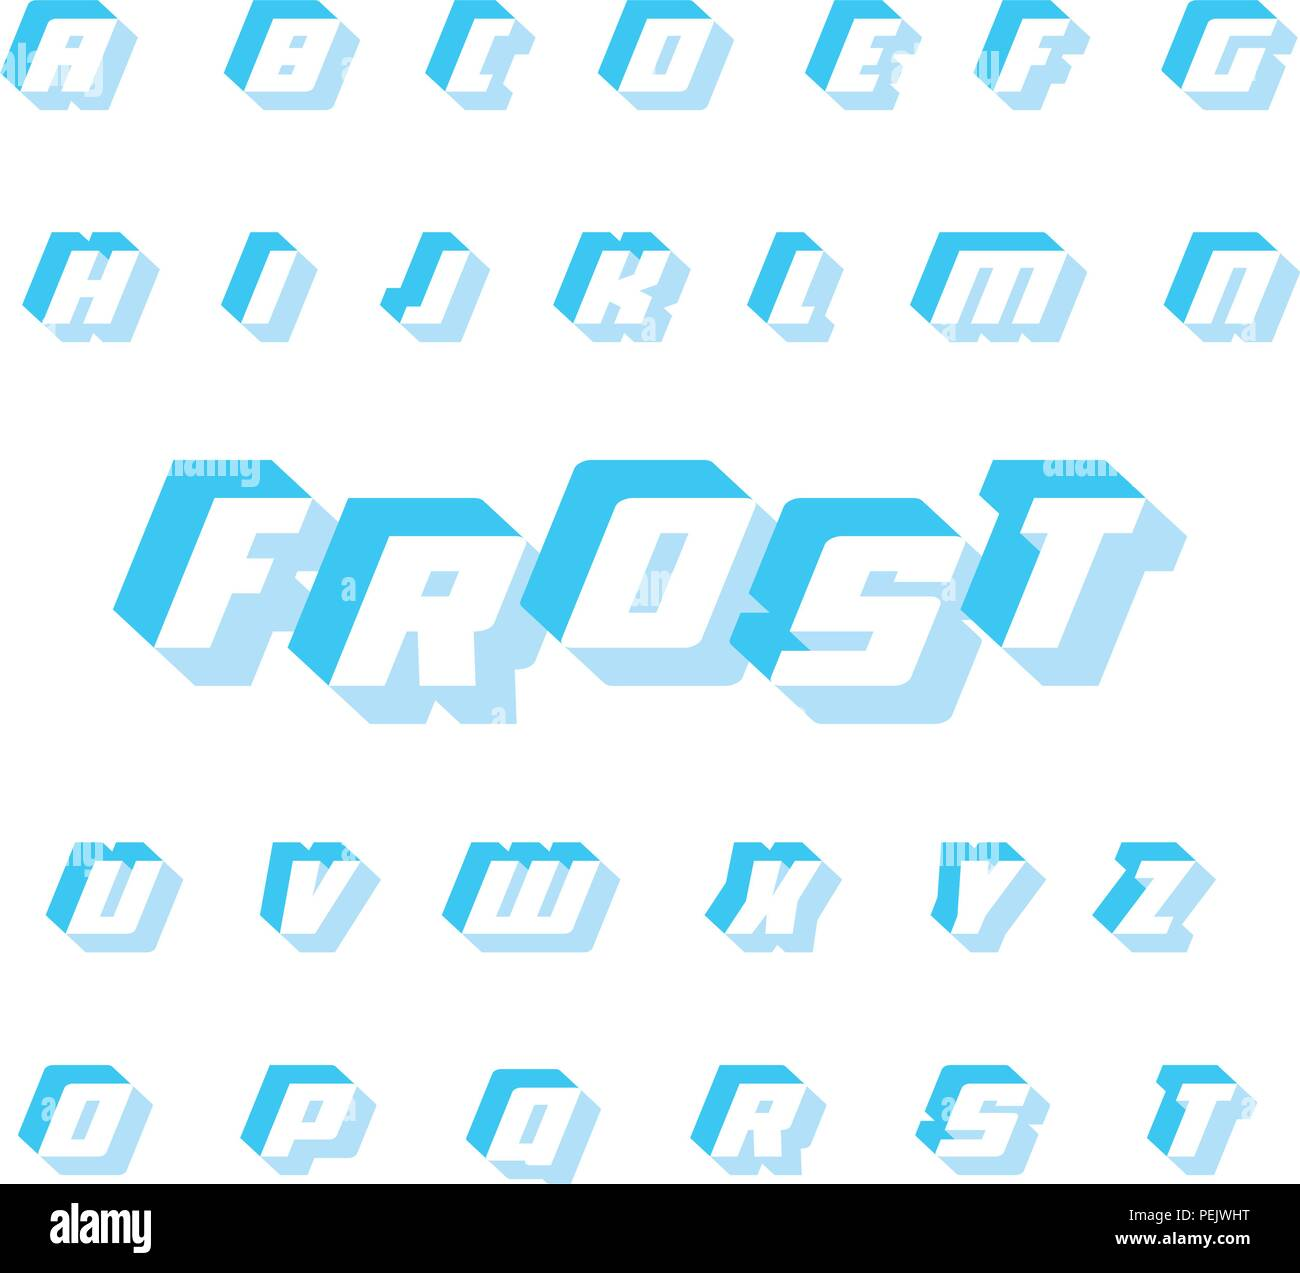 3D letters with shadow. Bold and italic square typography. Frozen ice cubes. Symbols collection on white background.